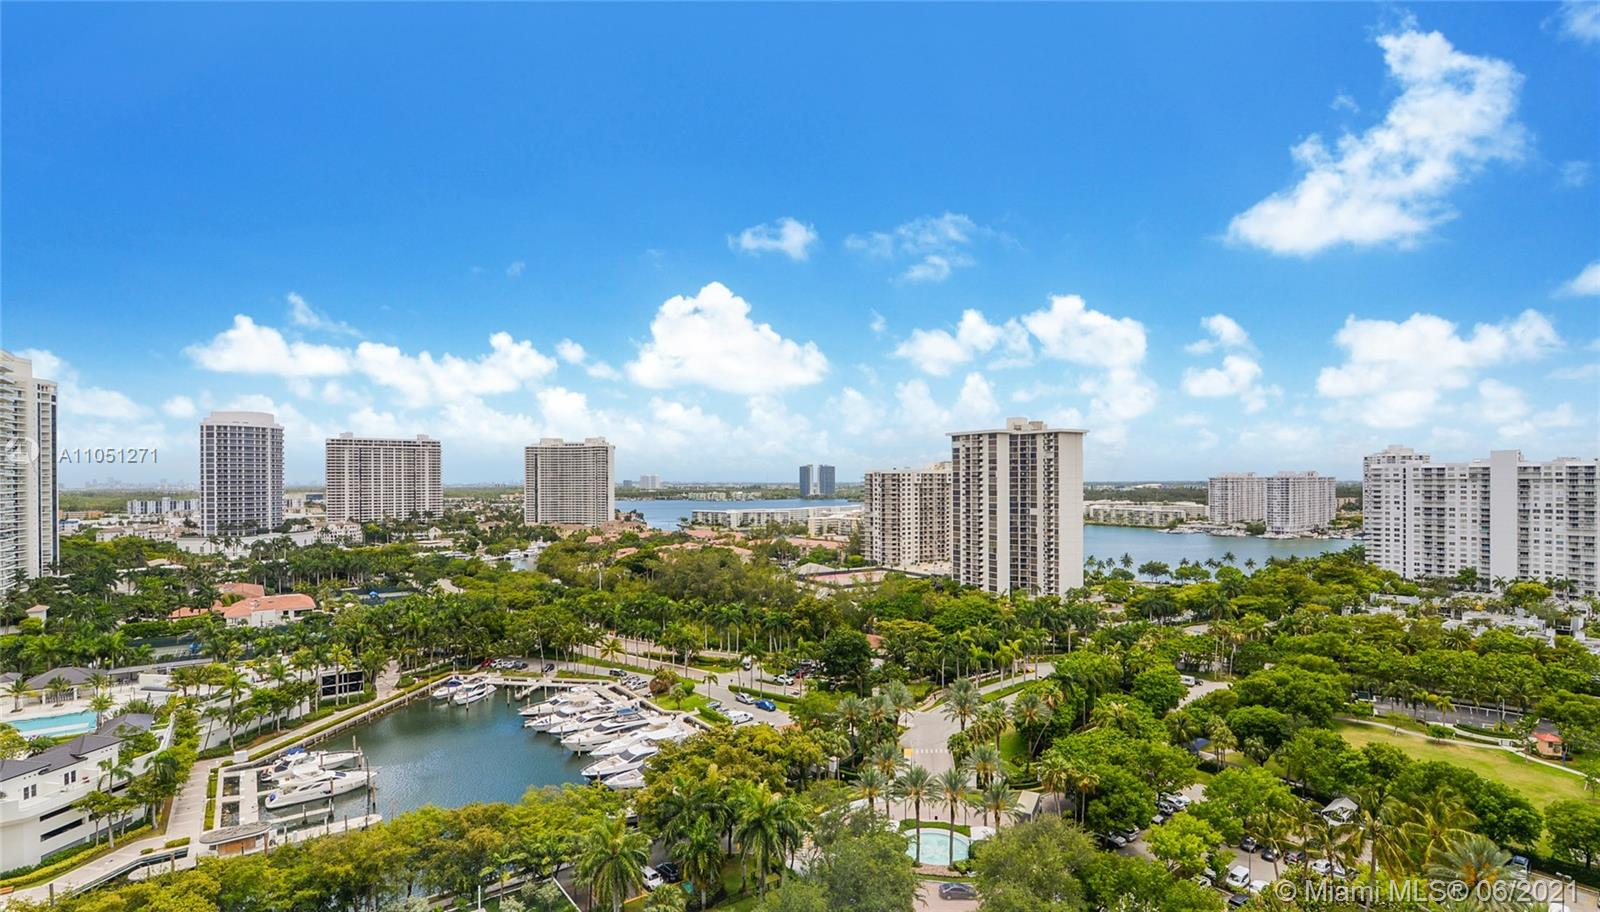 Photo of 3301 183rd St #1906, Aventura, Florida, 33160 - 2nd Bedroom, THIS UNIT 1906 HAS 4 BEDROOMS